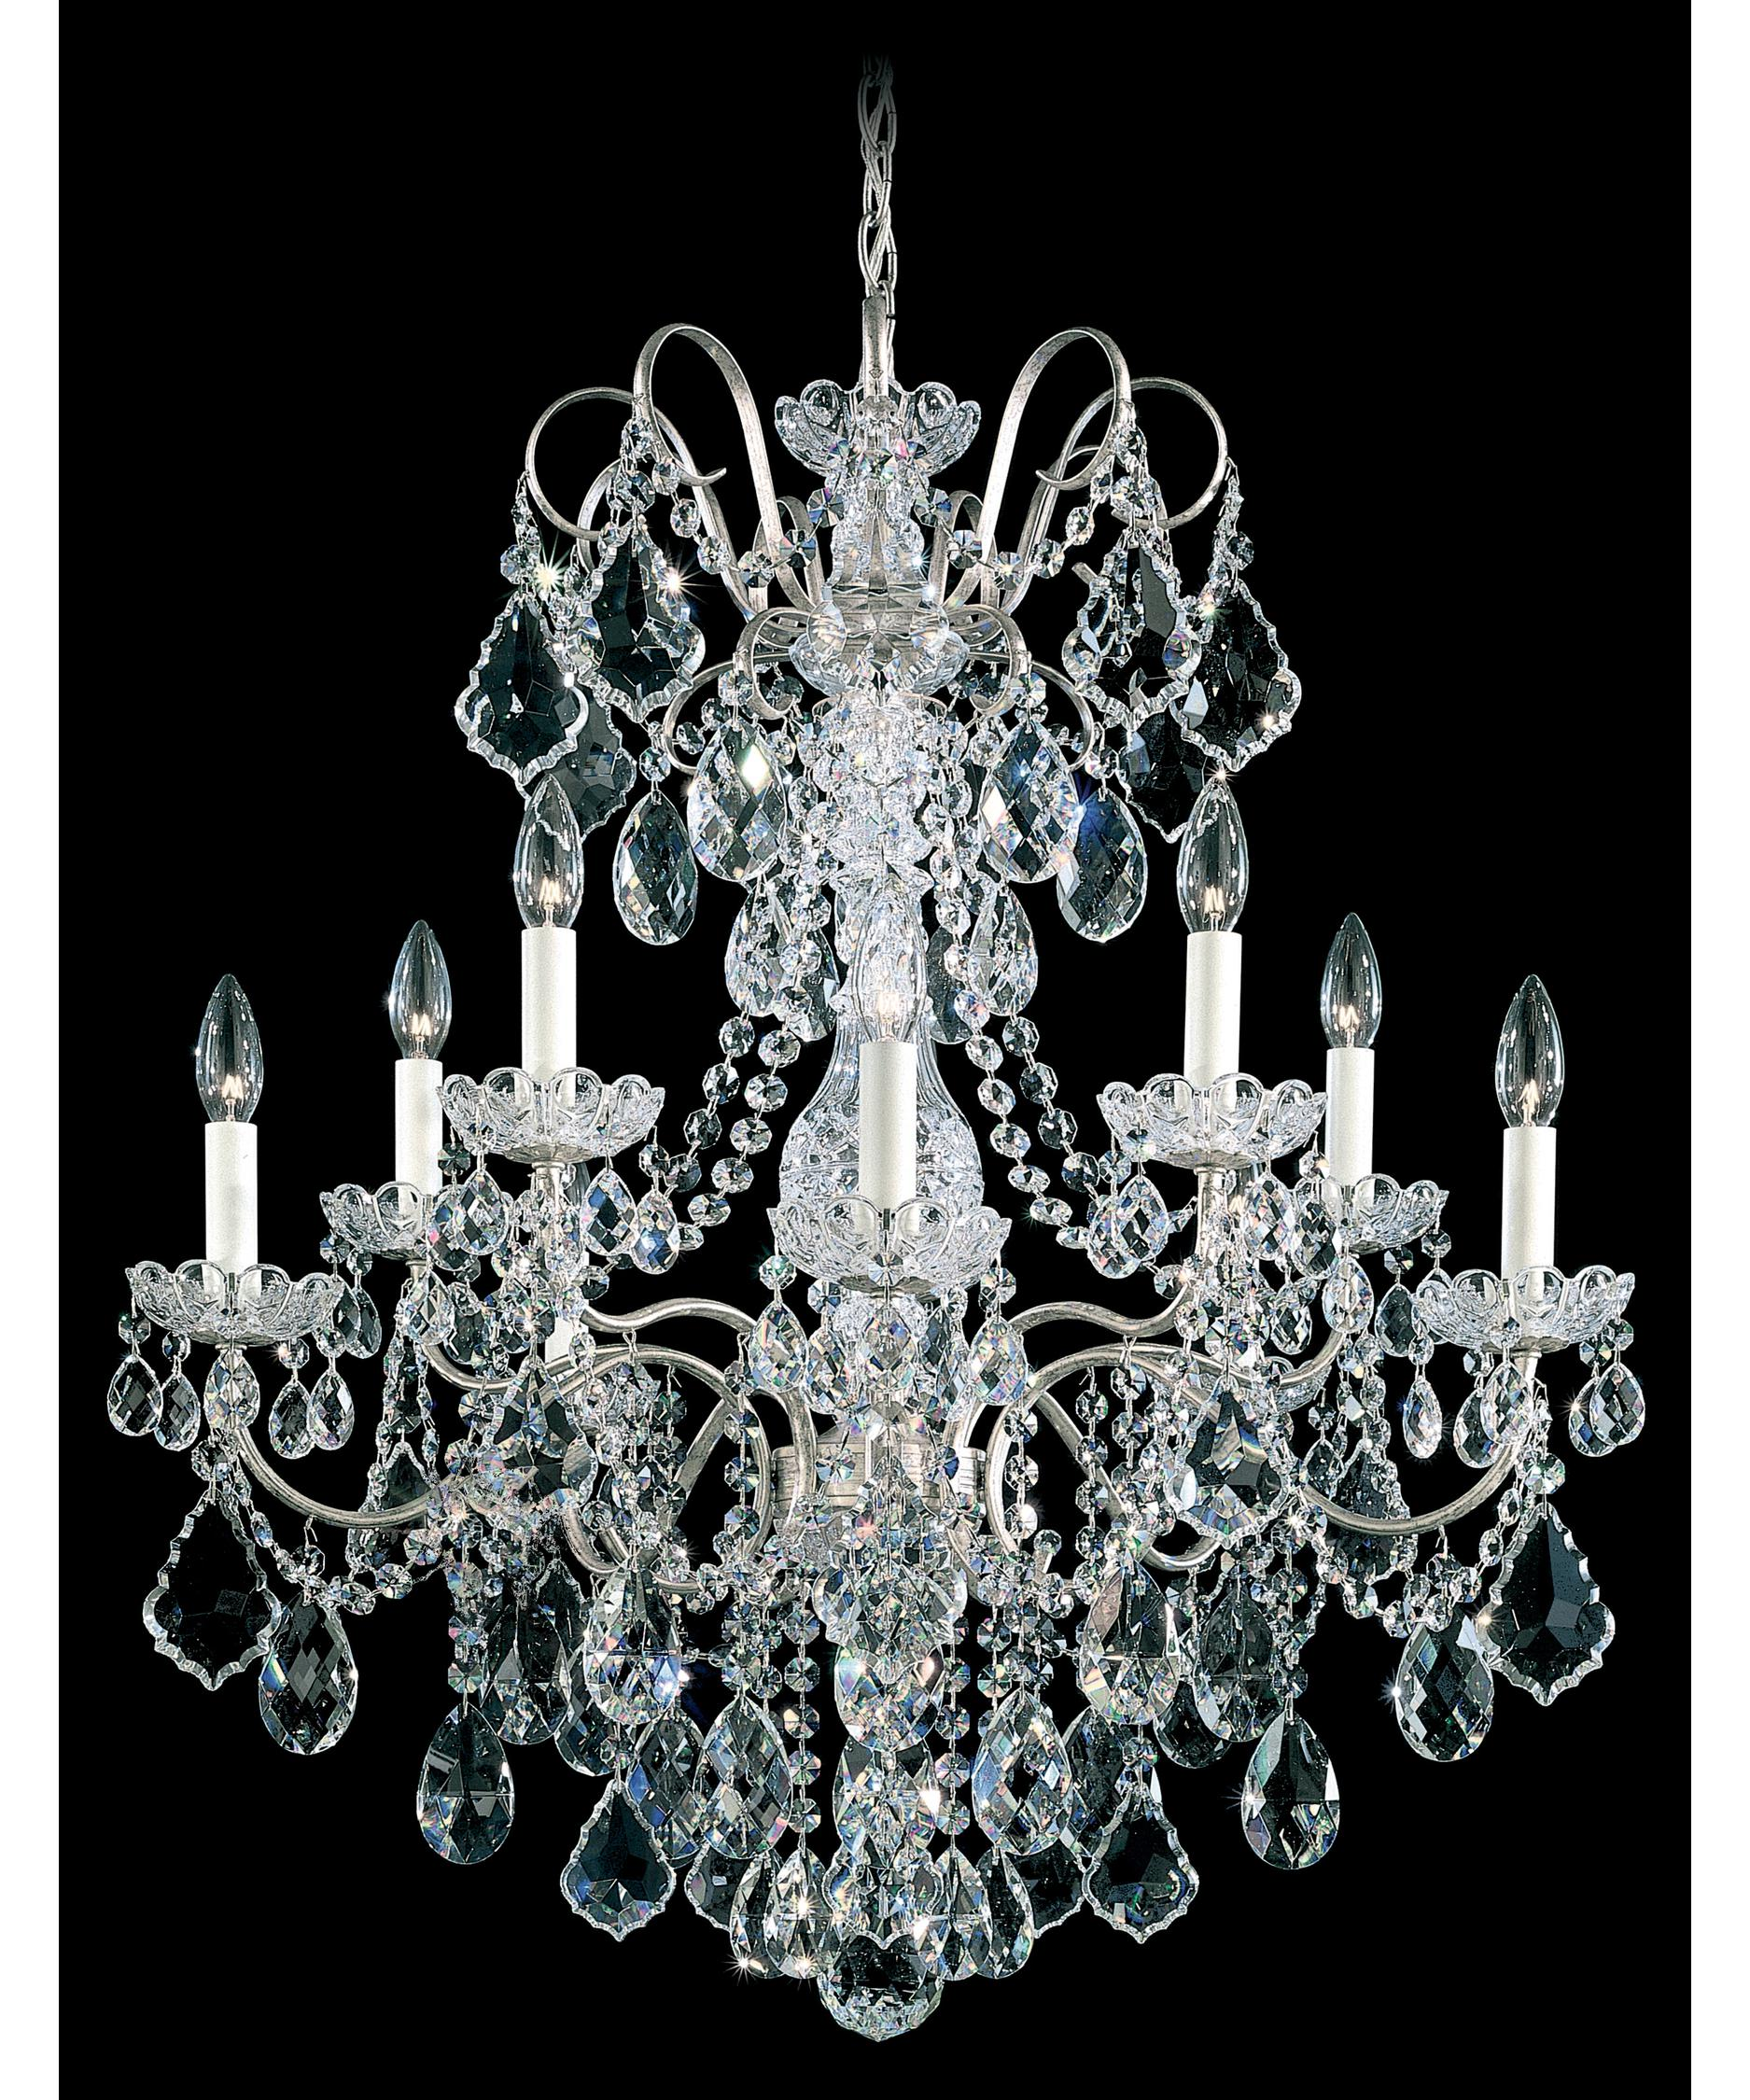 schonbek new orleans 28 inch wide 10 light chandelier capitol lighting - Schonbek Lighting